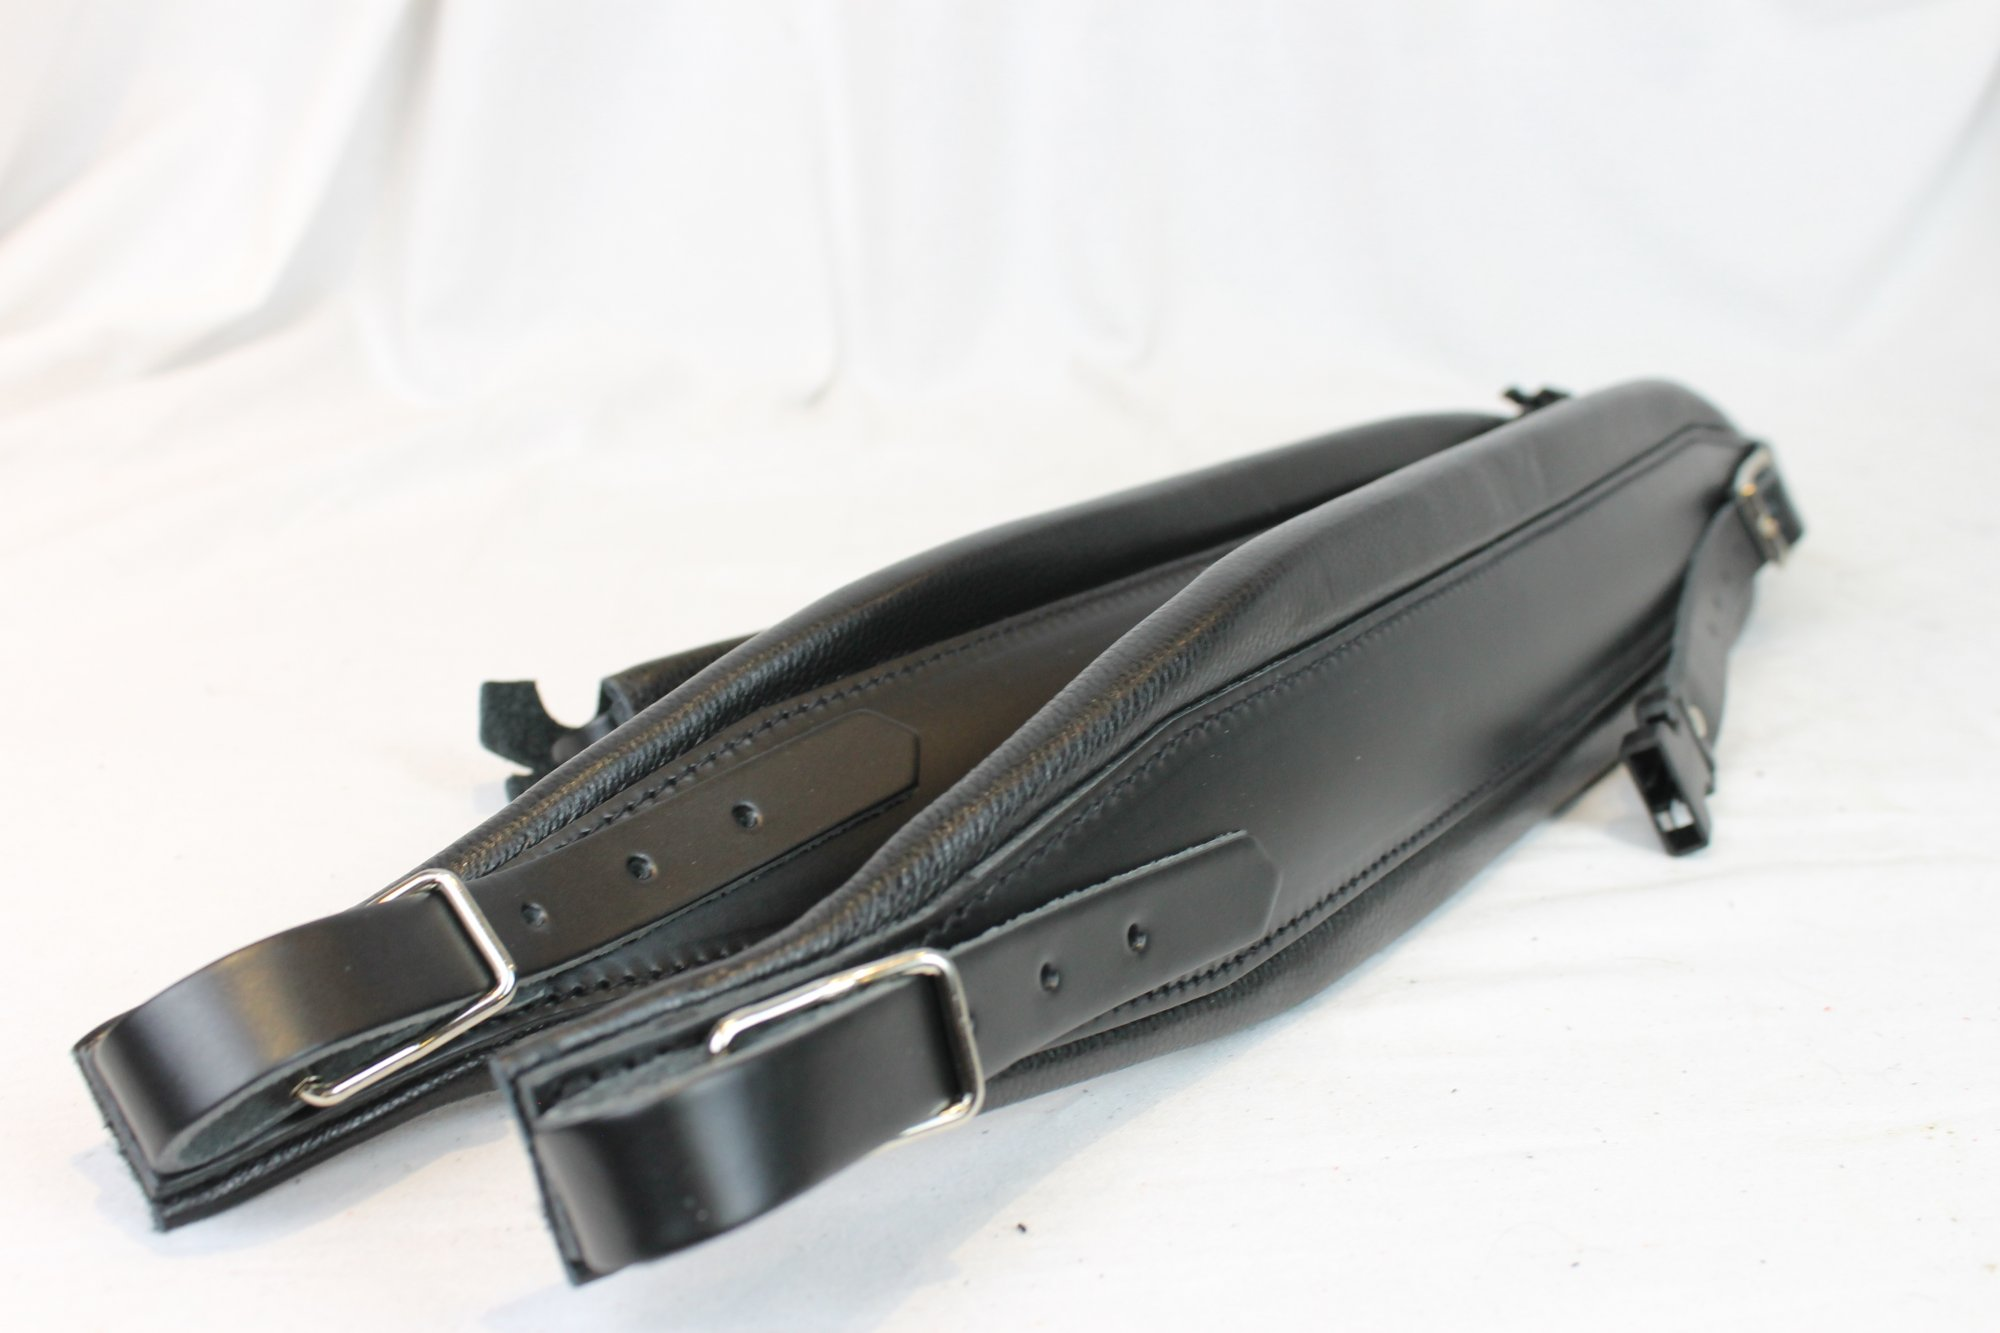 New Black Leather Pelle Fuselli Accordion Shoulder Straps Width (8cm / 3.1in) Length (95~115cm / 37.4~45.3in)